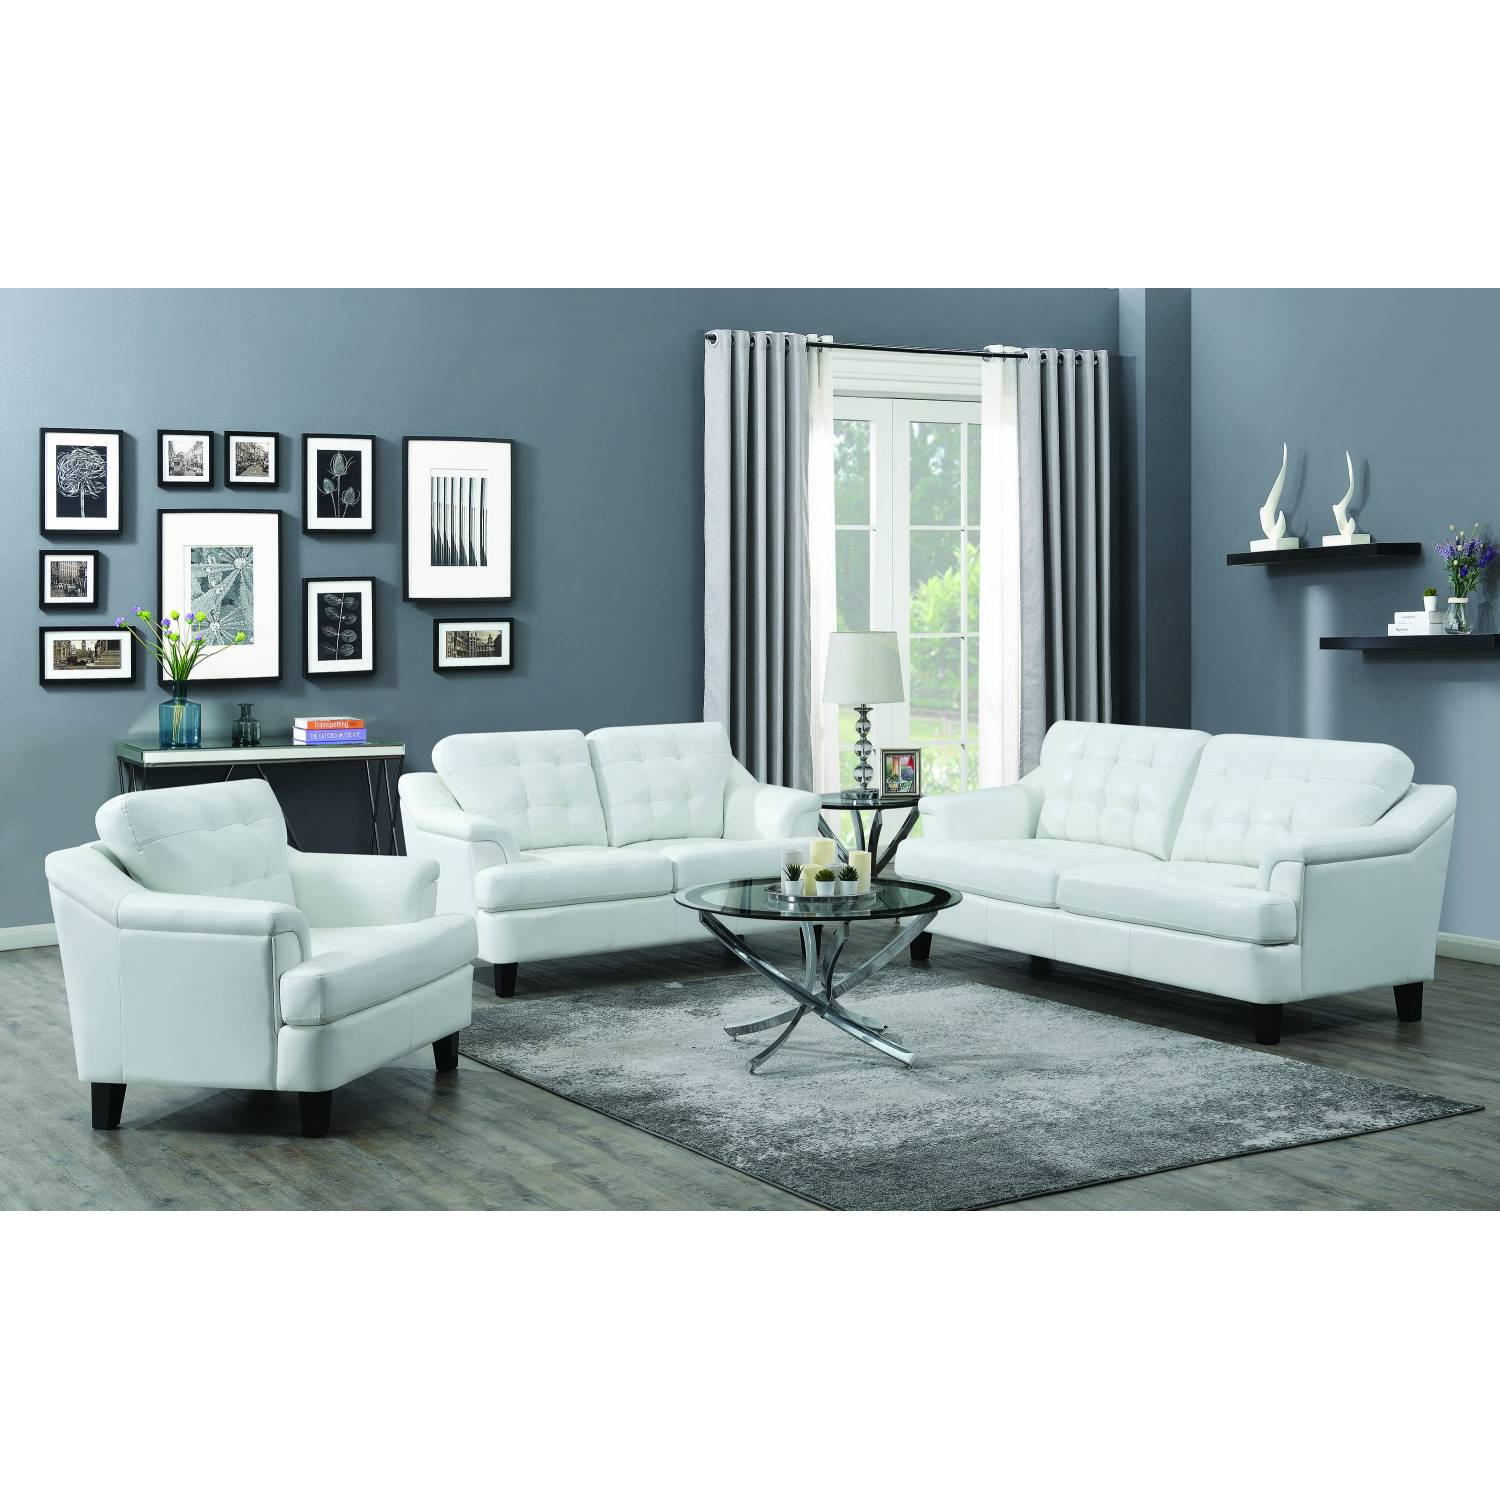 508634-S3 Freeport 3-Piece Living Room Set Snow White Black